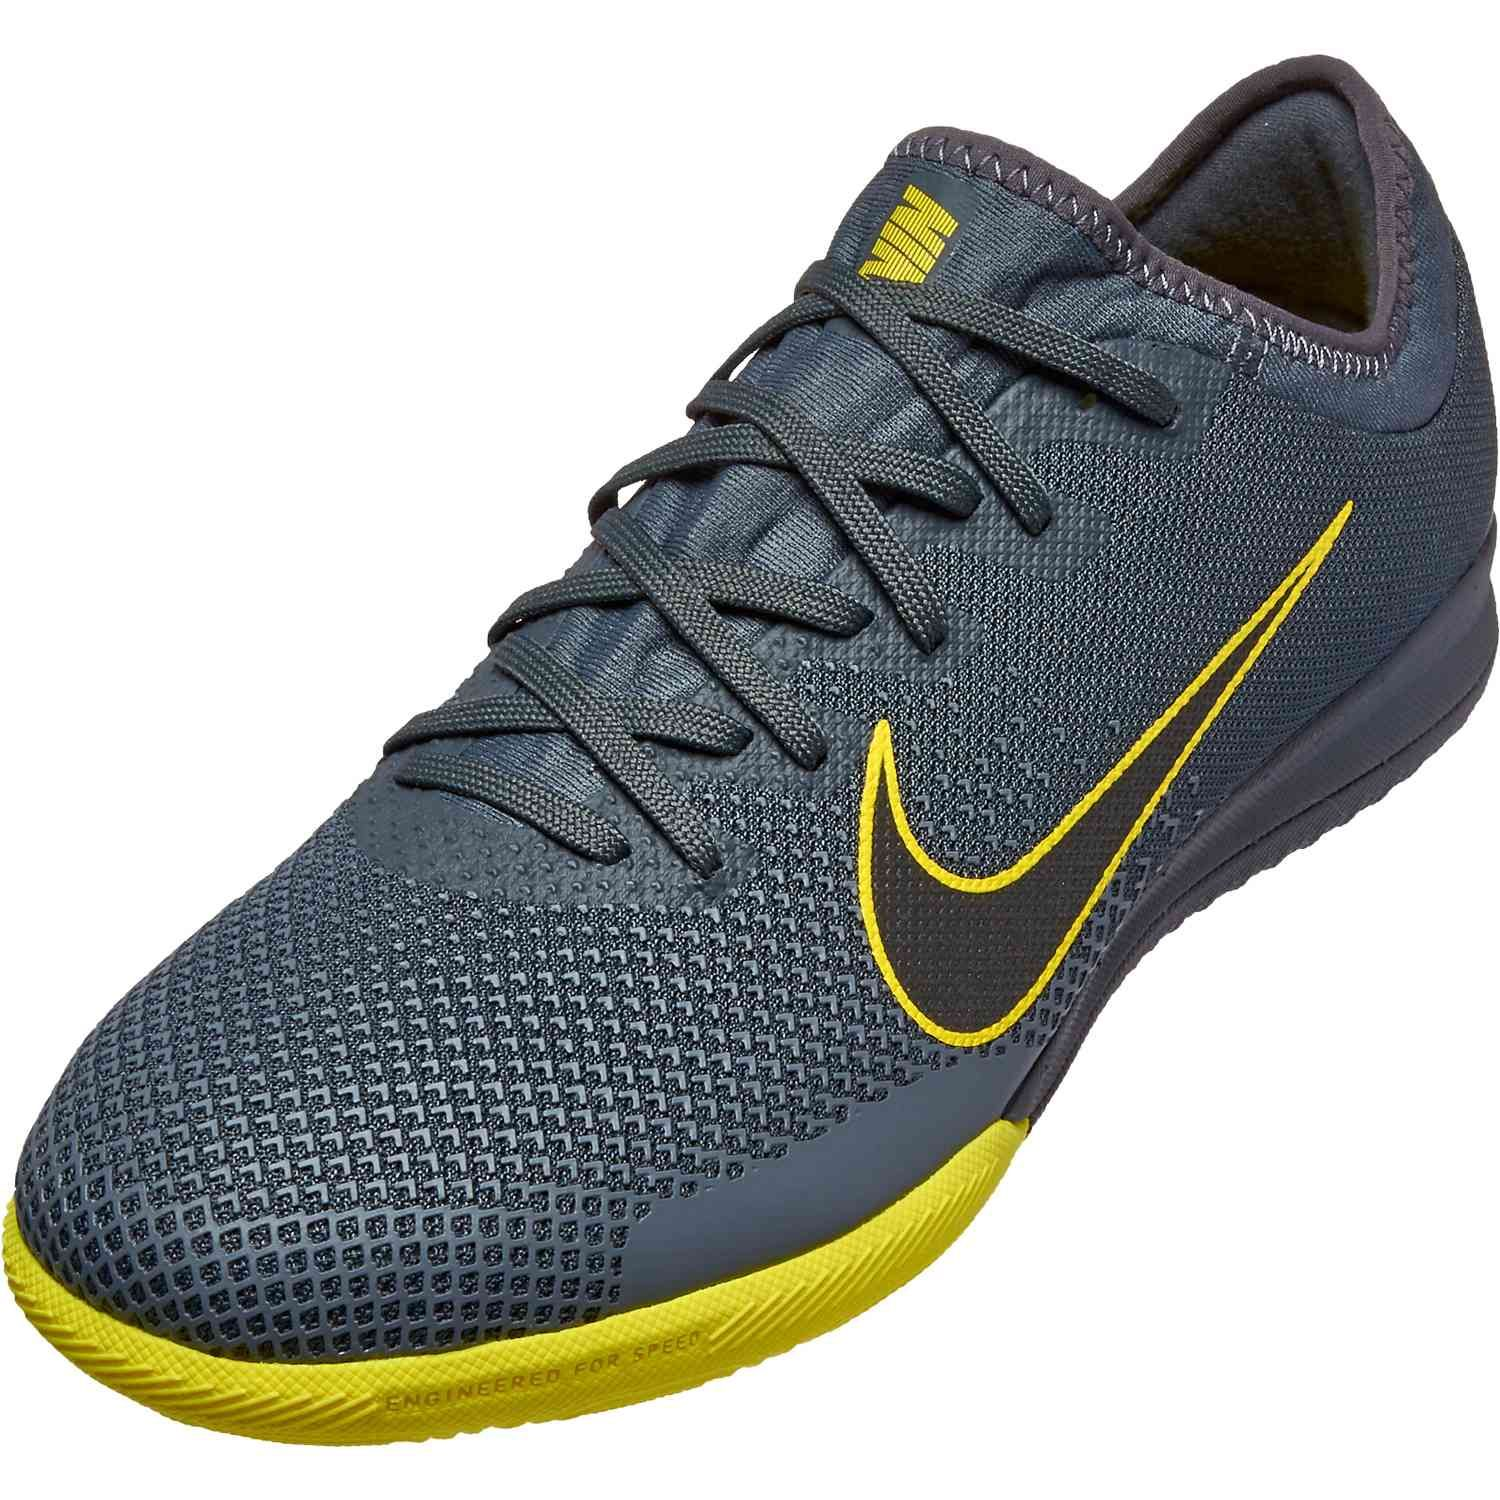 1fe221399 Shop for these Nike Mercurial Vapor 12 Pro indoor soccer shoes from  SoccerPro.